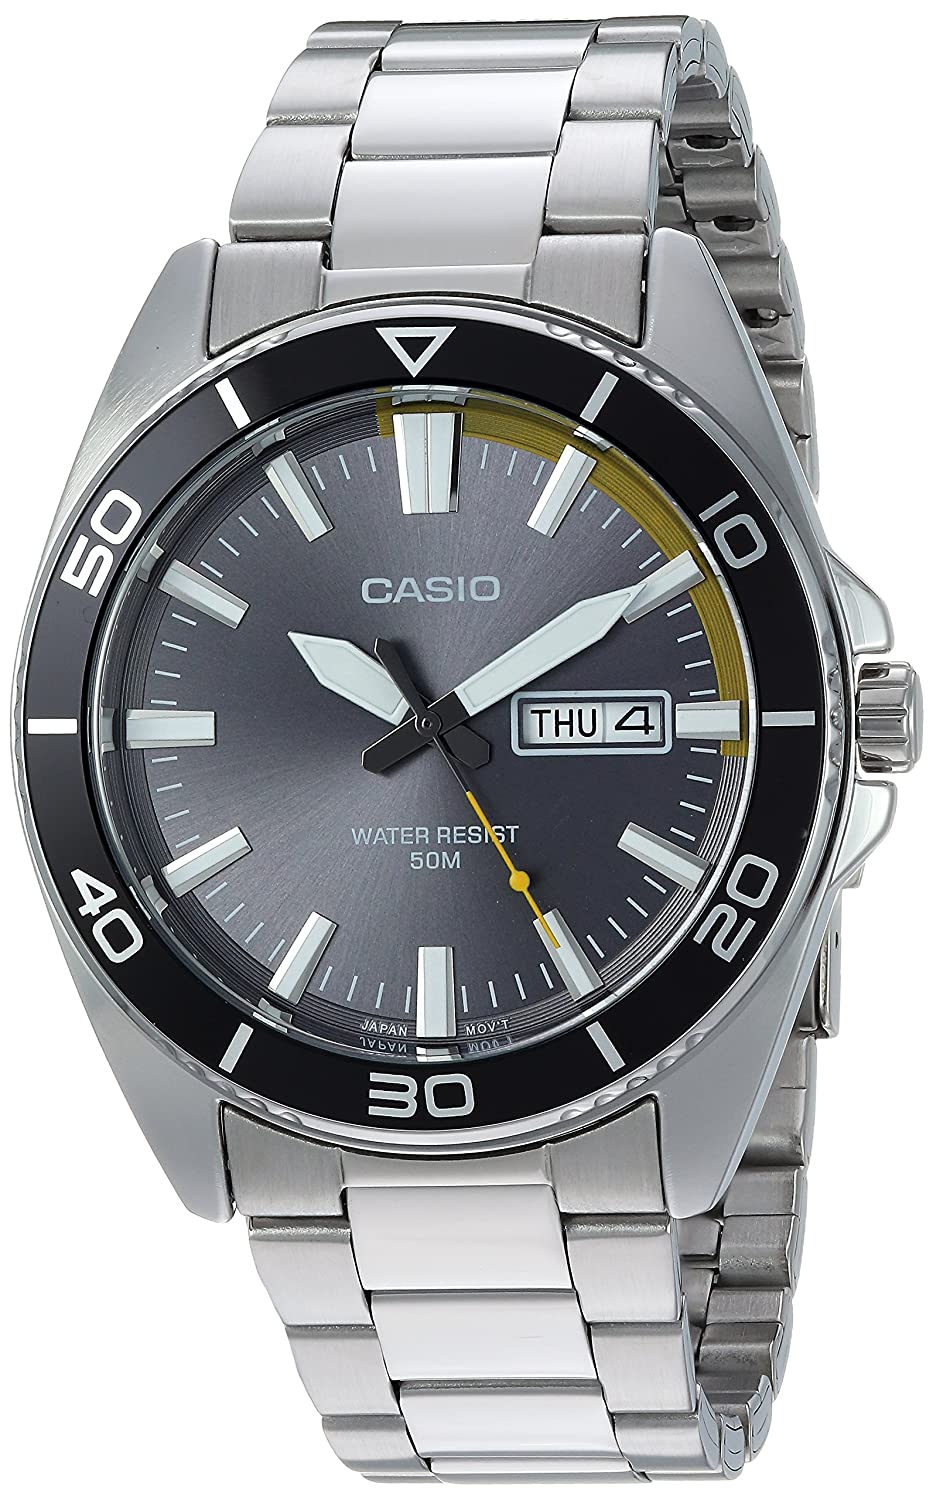 ff805beea Amazon.com: Casio Men's Sports Quartz Watch with Stainless-Steel Strap,  Silver, 21.9 (Model: MTD-120D-8AVCF): Watches